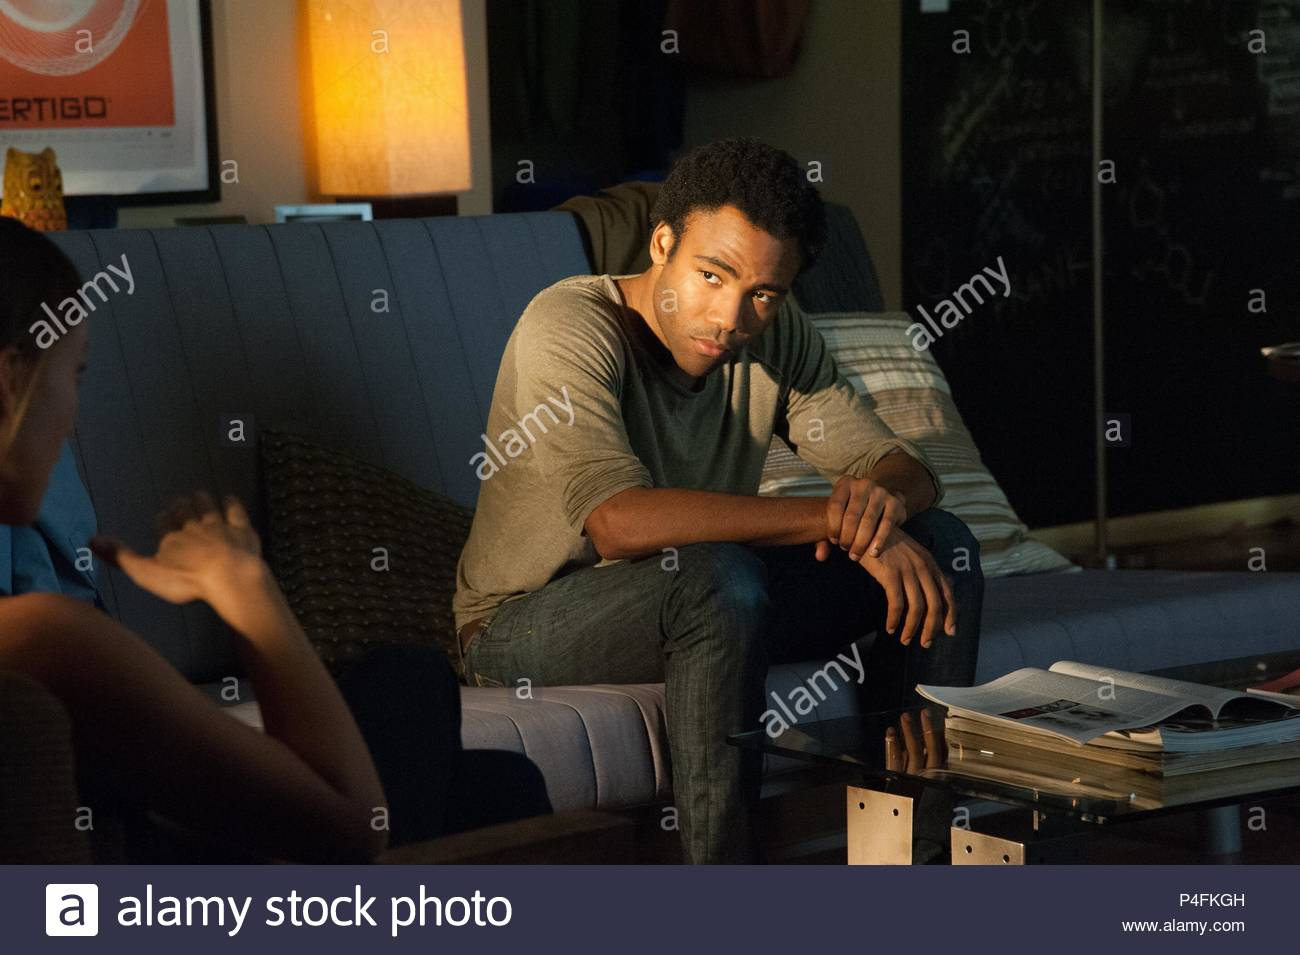 Original Film Title: THE LAZARUS EFFECT.  English Title: THE LAZARUS EFFECT.  Film Director: DAVID GELB.  Year: 2015.  Stars: DONALD GLOVER. Credit: BLUMHOUSE PRODUCTIONS/LIONSGATE/MOSAIC MEDIA GROUP / Album - Stock Image